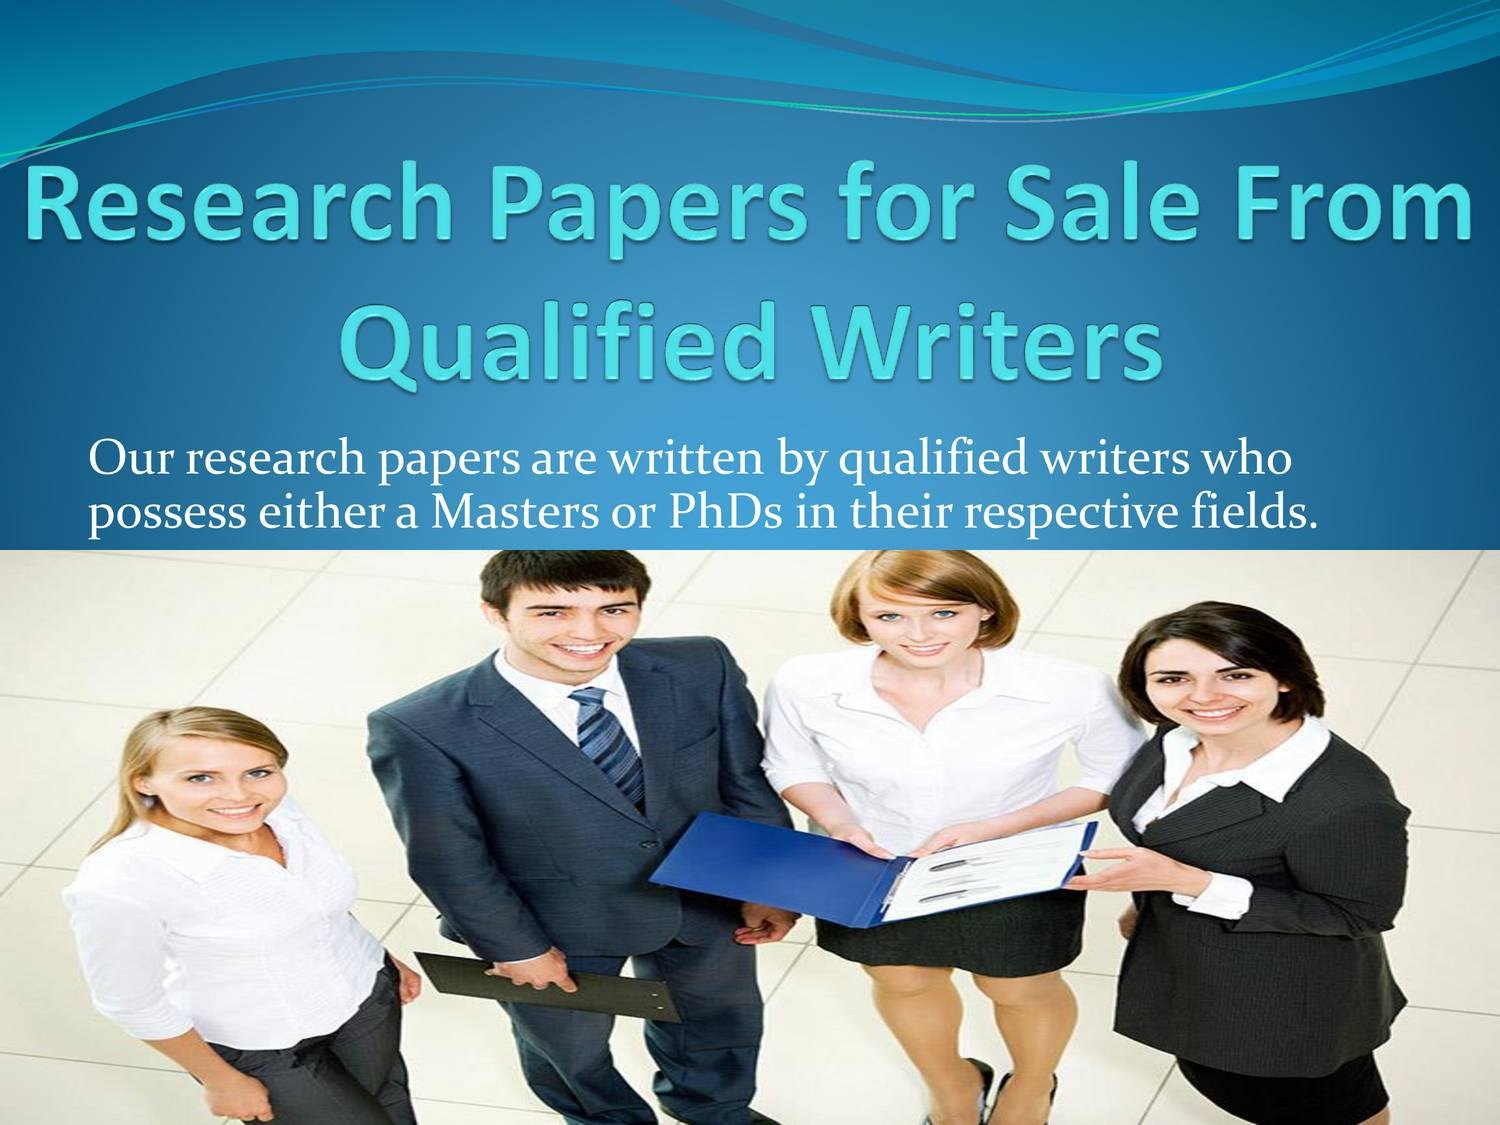 020 Researchs For Sale From Qualified Writers Fascinating Research Papers Medical Paper Topics Death Of A Salesman History Full